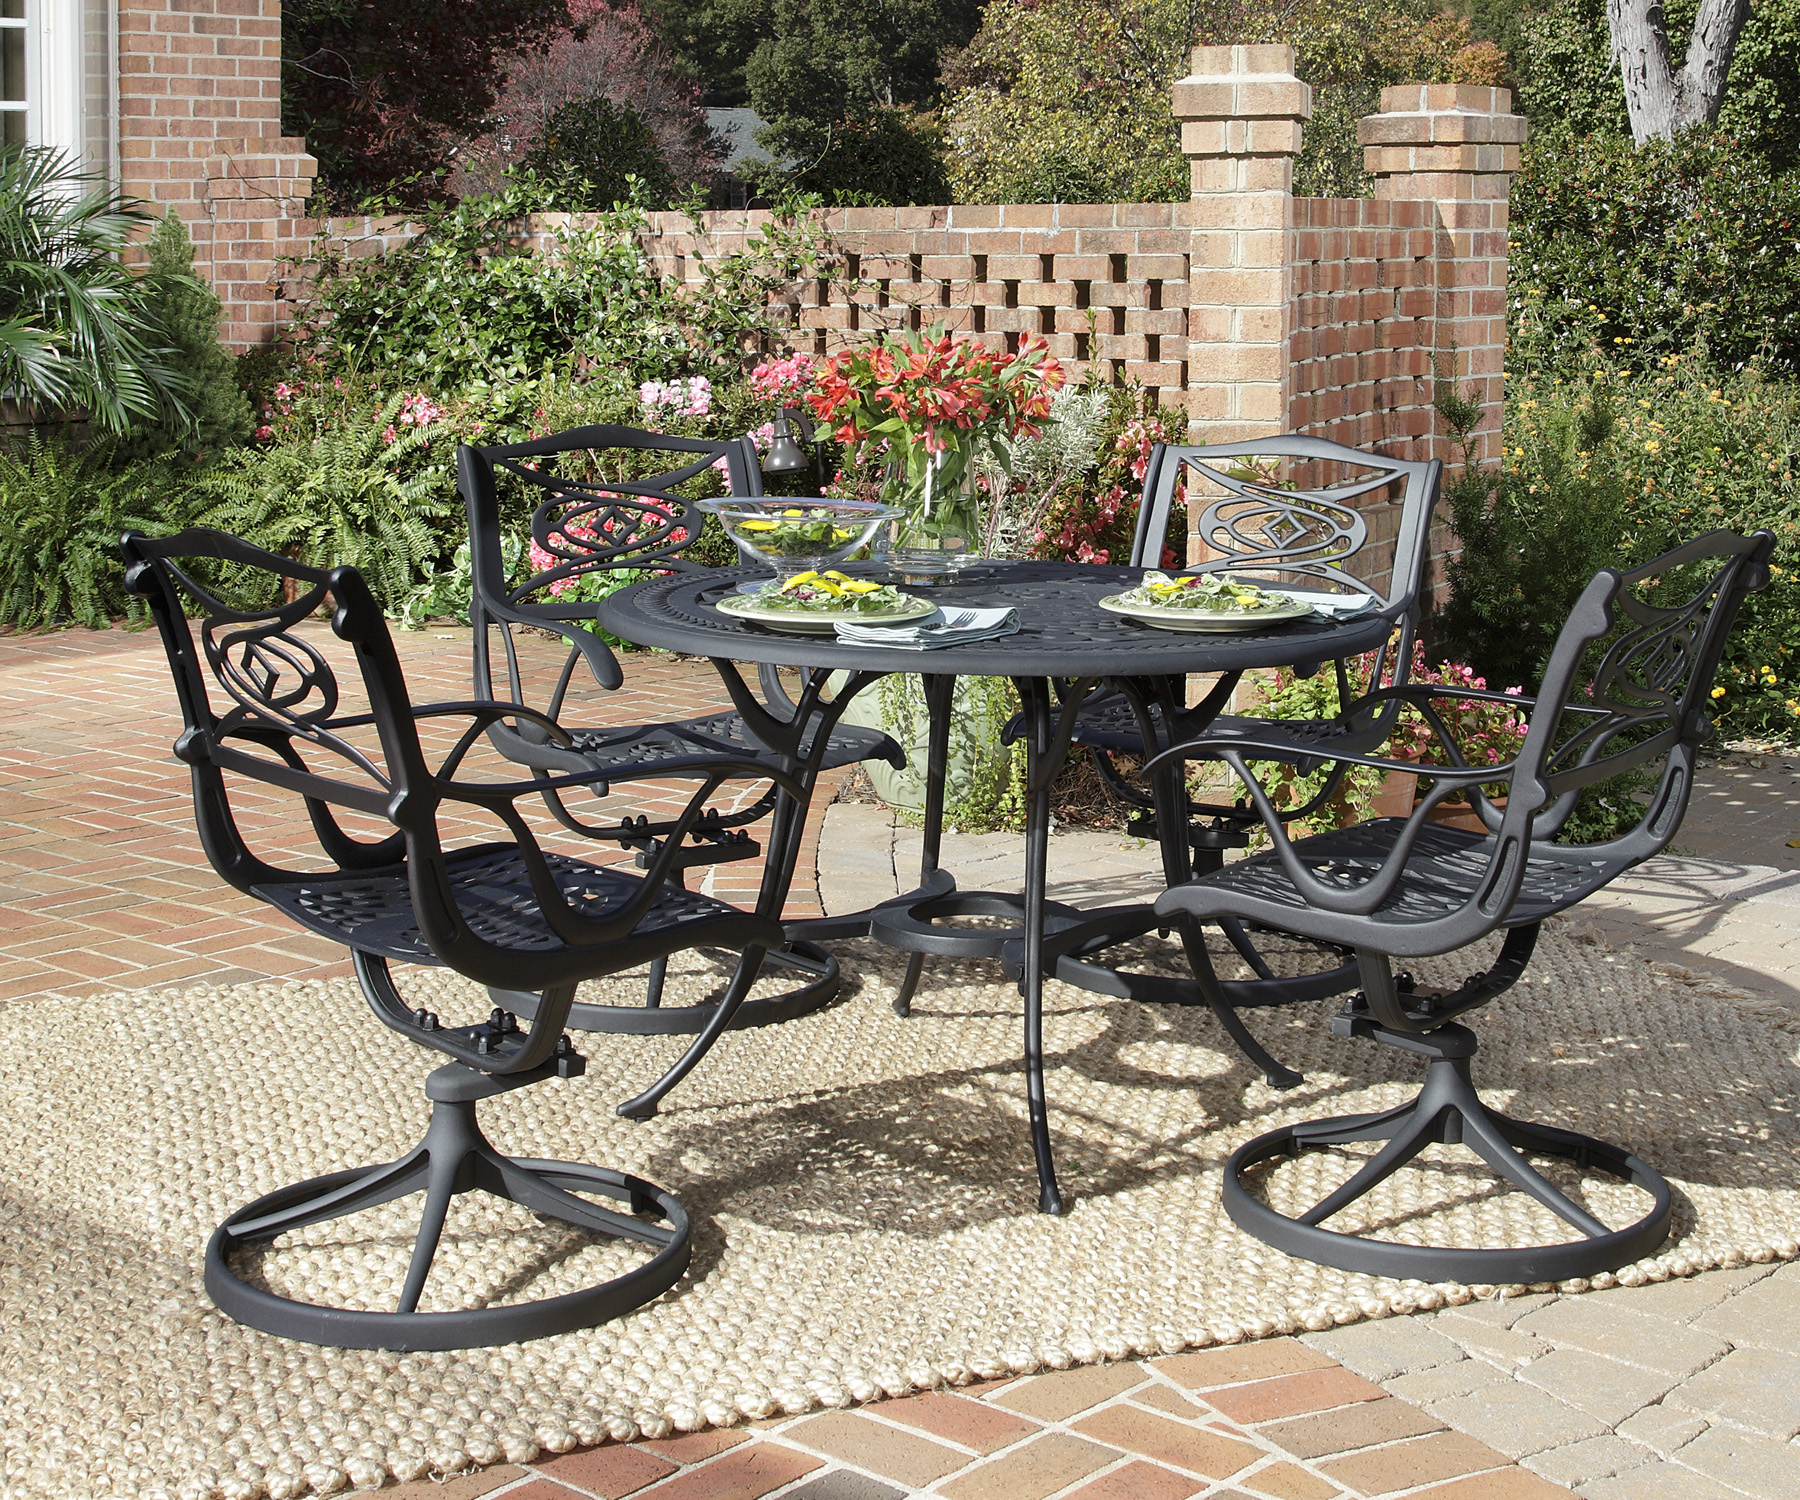 OUTDOOR DINING TABLE CHAIRS | Chair Pads & Cushions